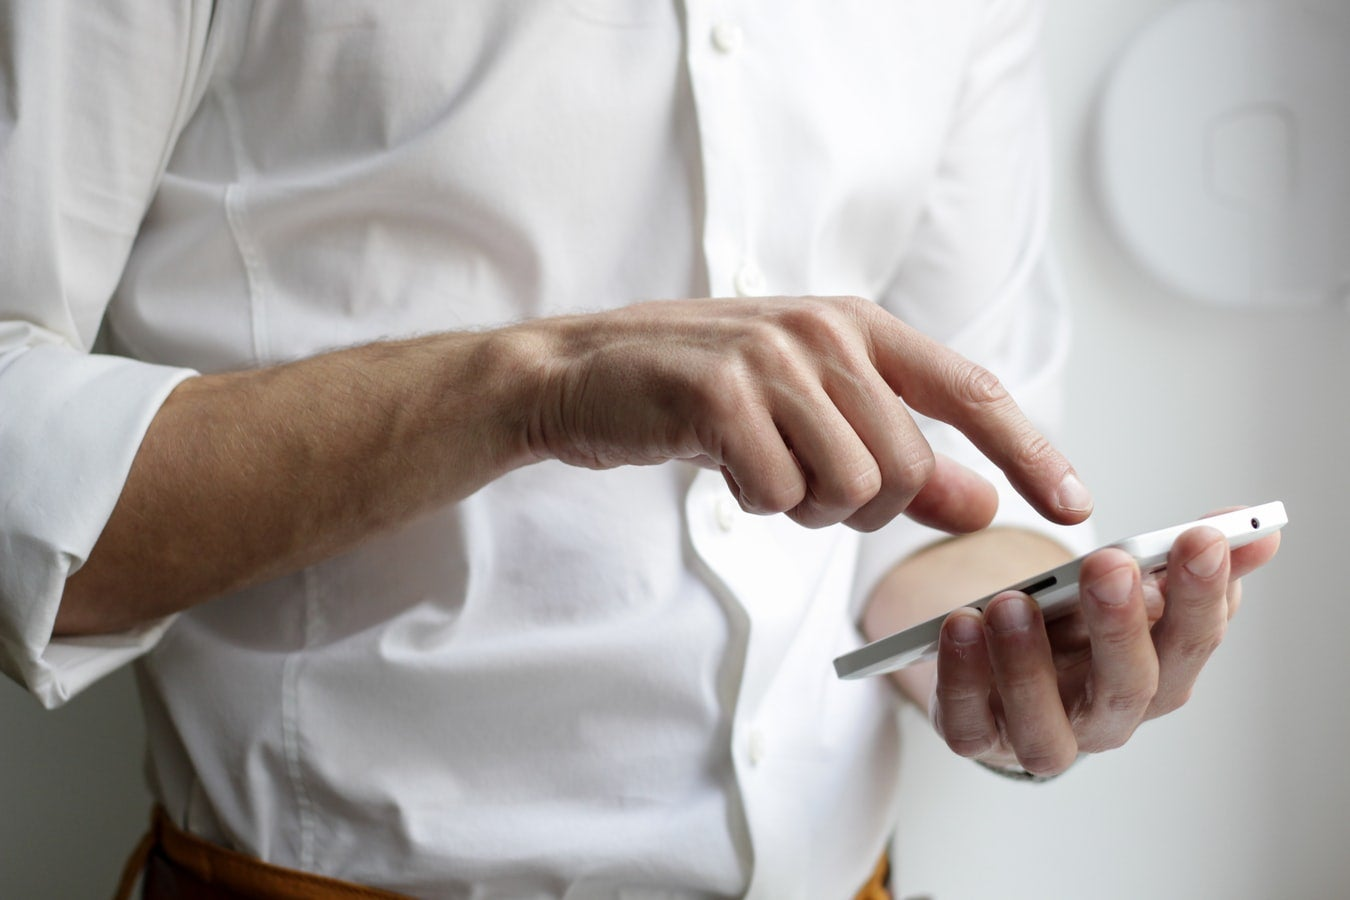 COVIDSafe app – can I direct my workers to download the app to their mobile devices?